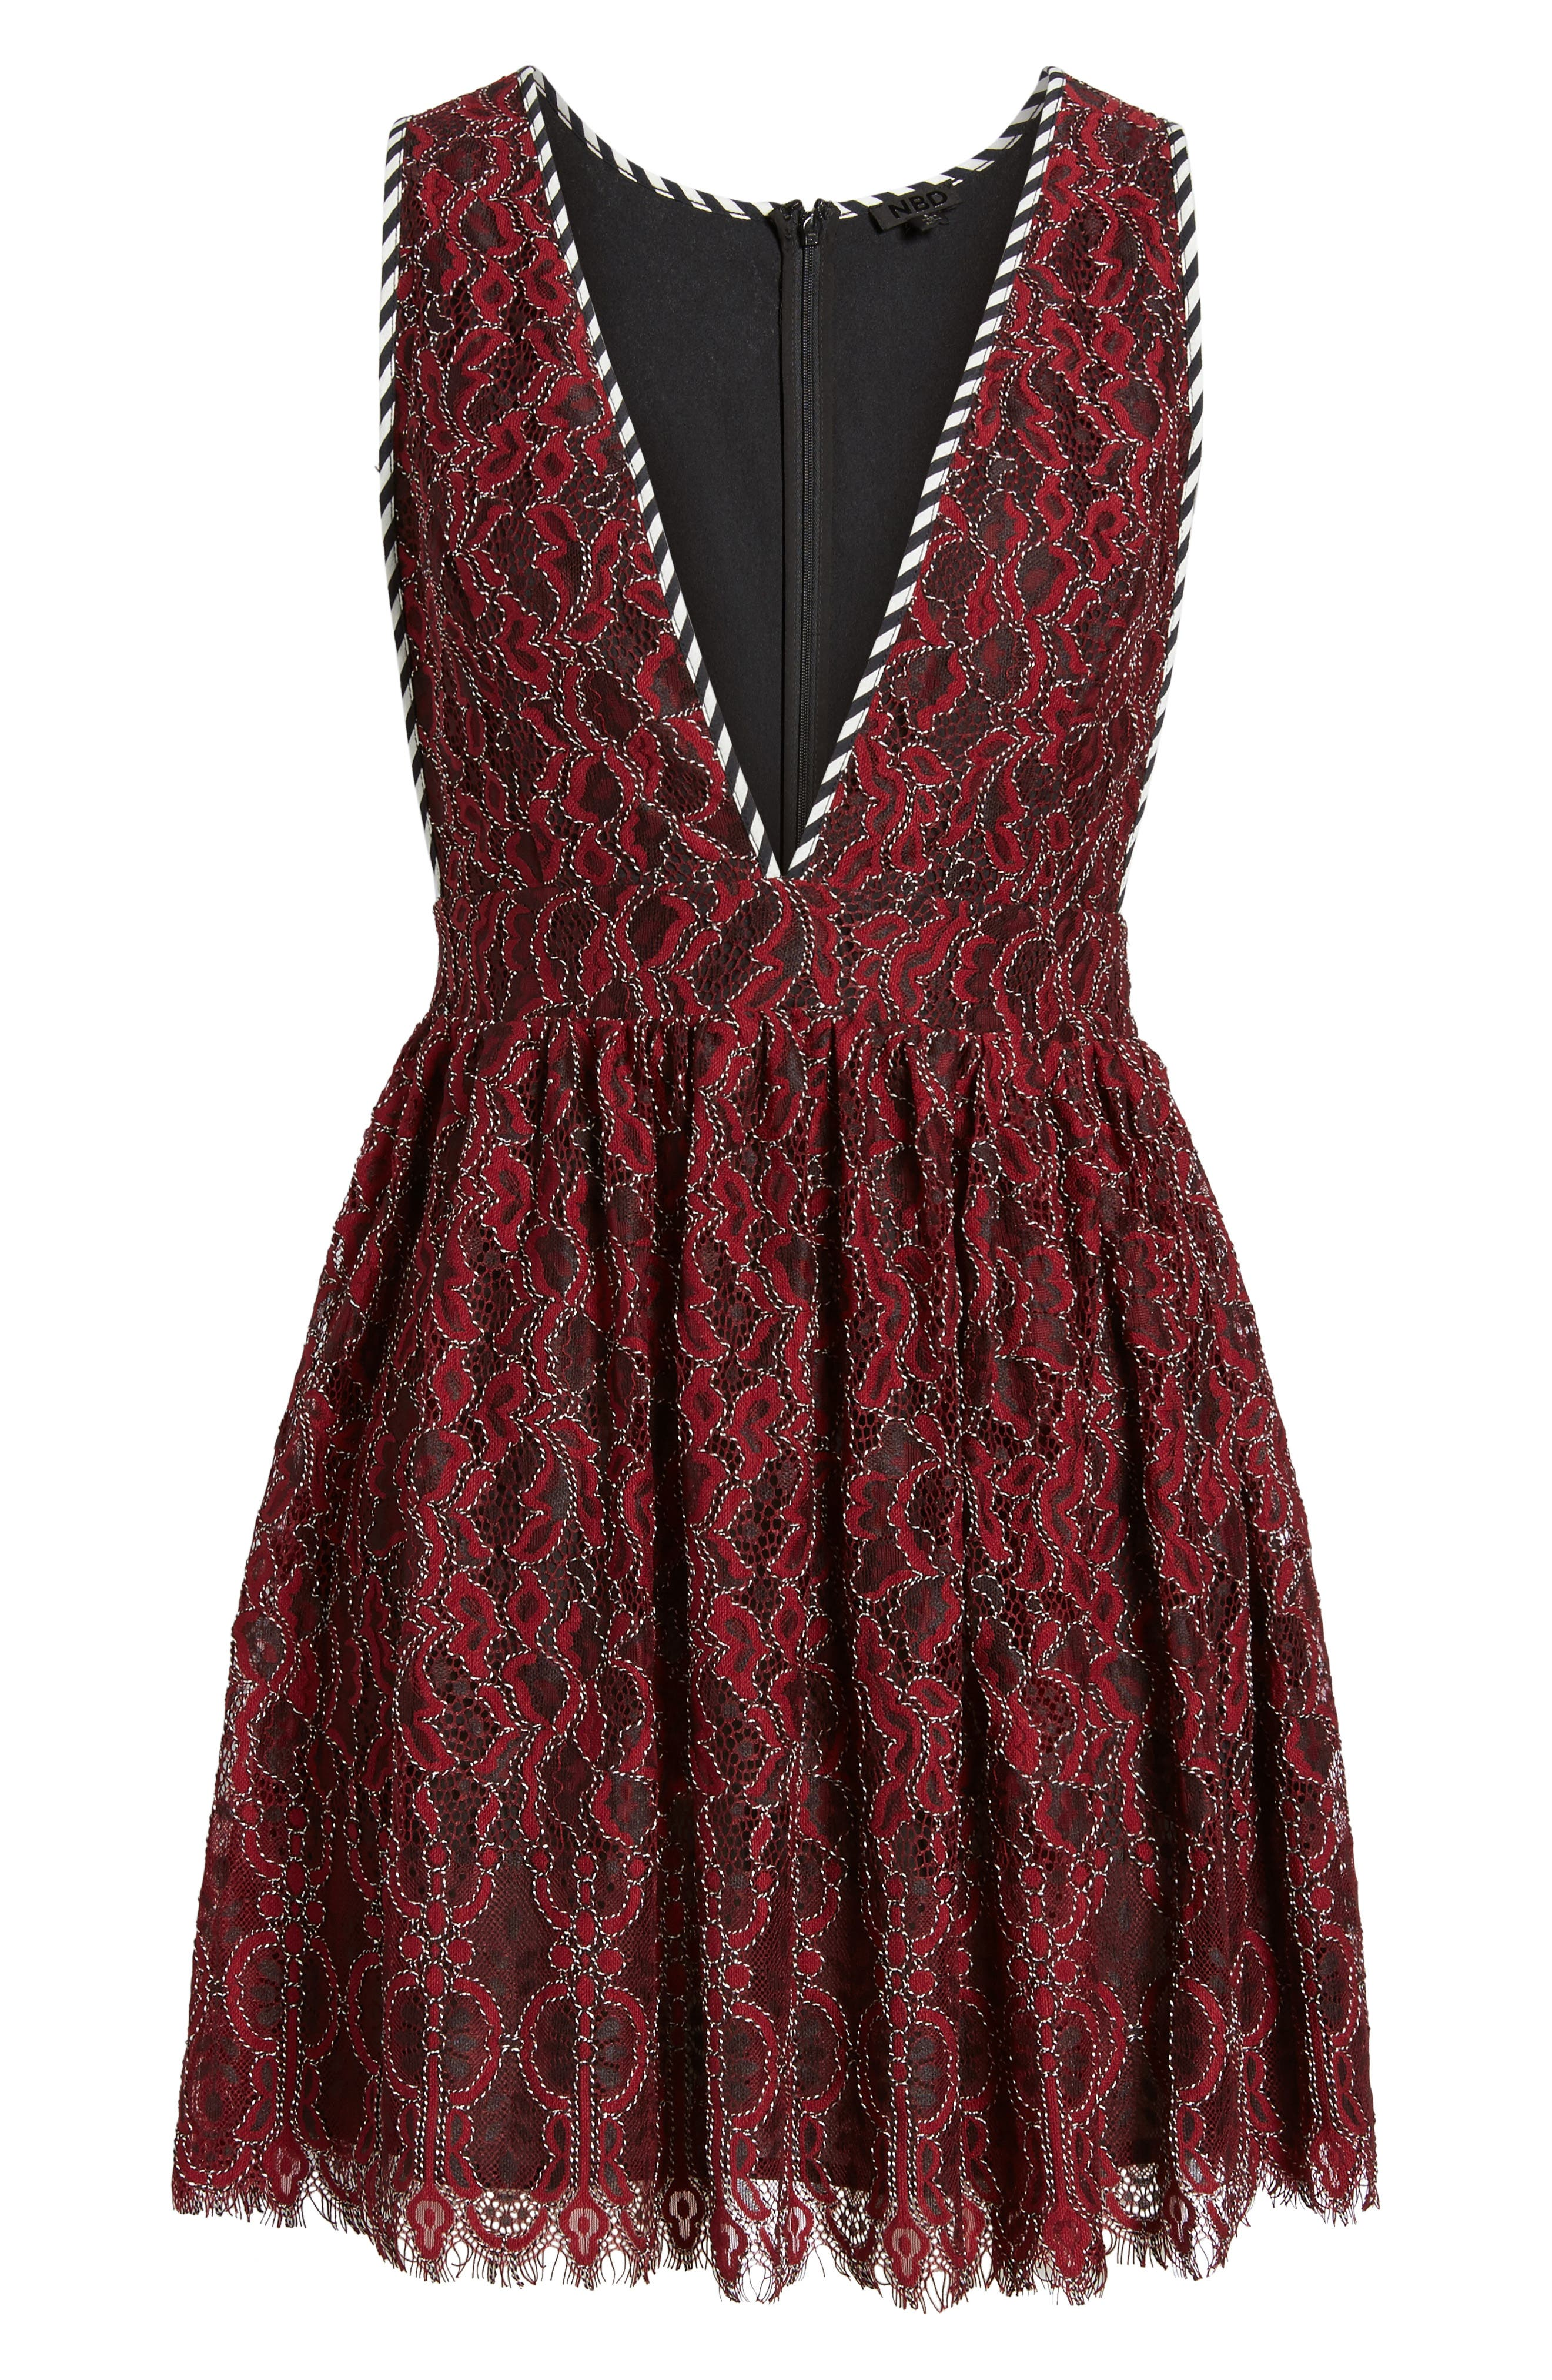 Starry Night Lace Minidress,                             Alternate thumbnail 5, color,                             Corded Oxblood